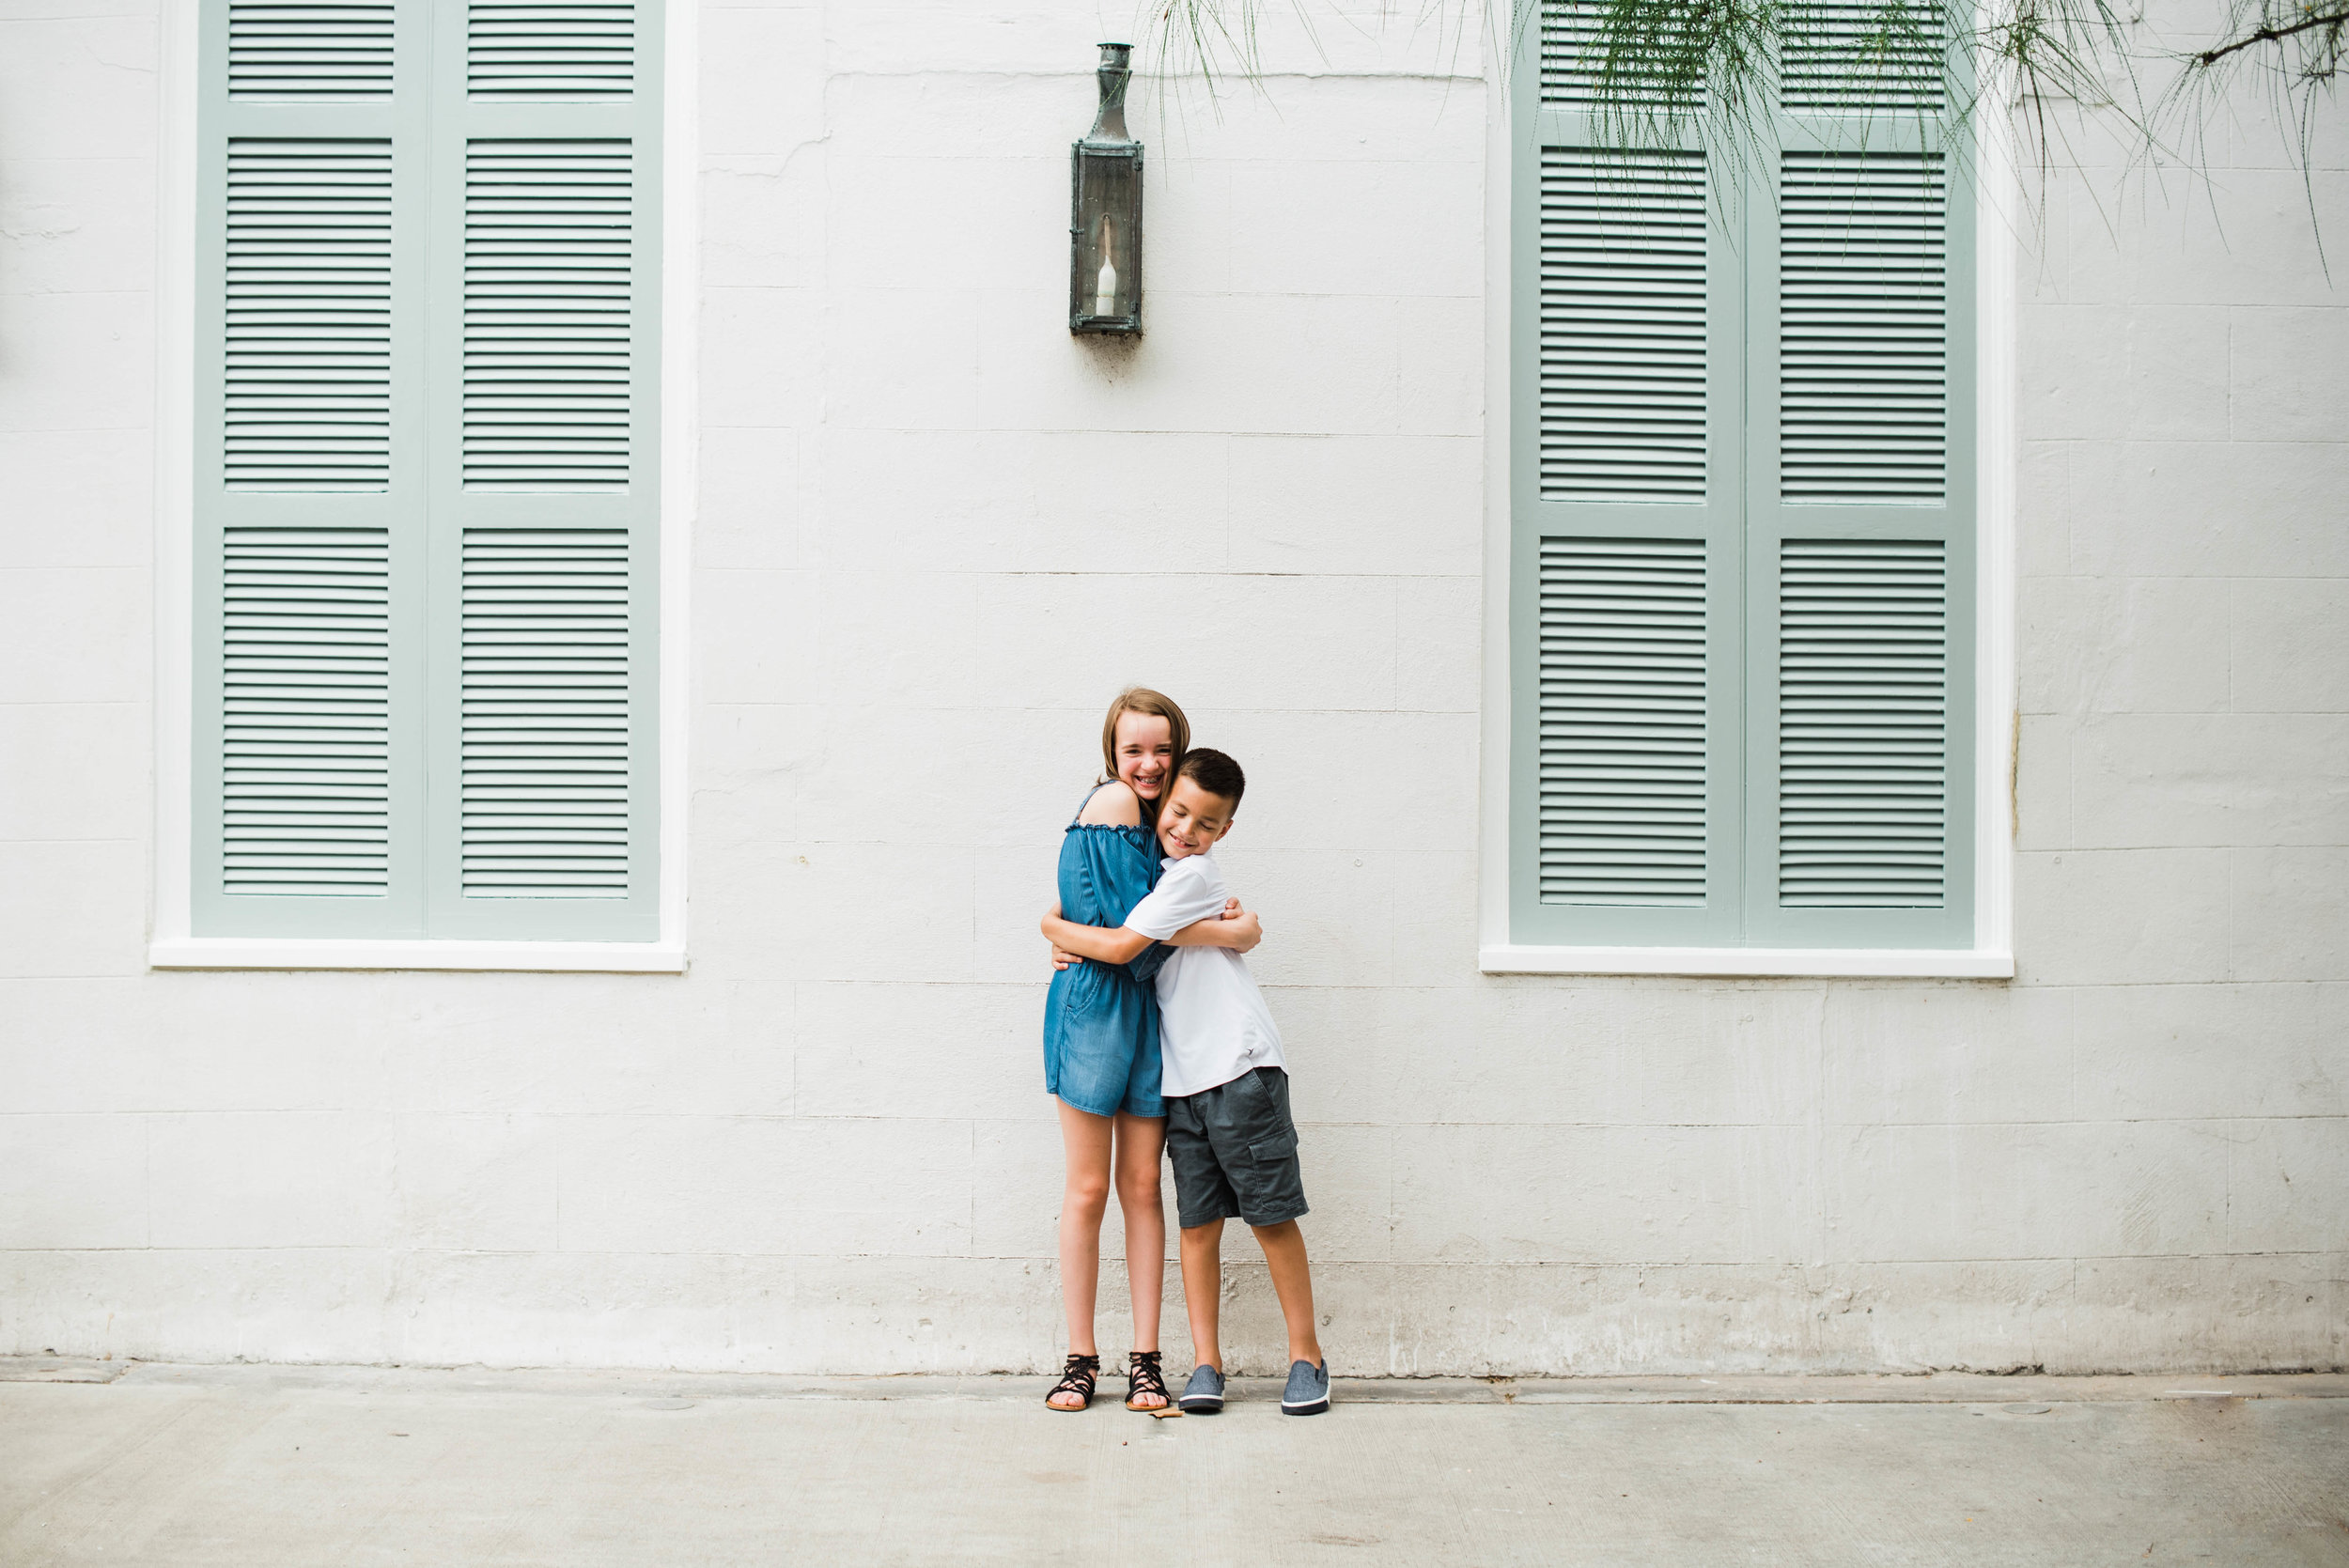 Conrad-Family-Photos-New-Orleans-French-Quarter_Gabby Chapin Photography_0155.jpg